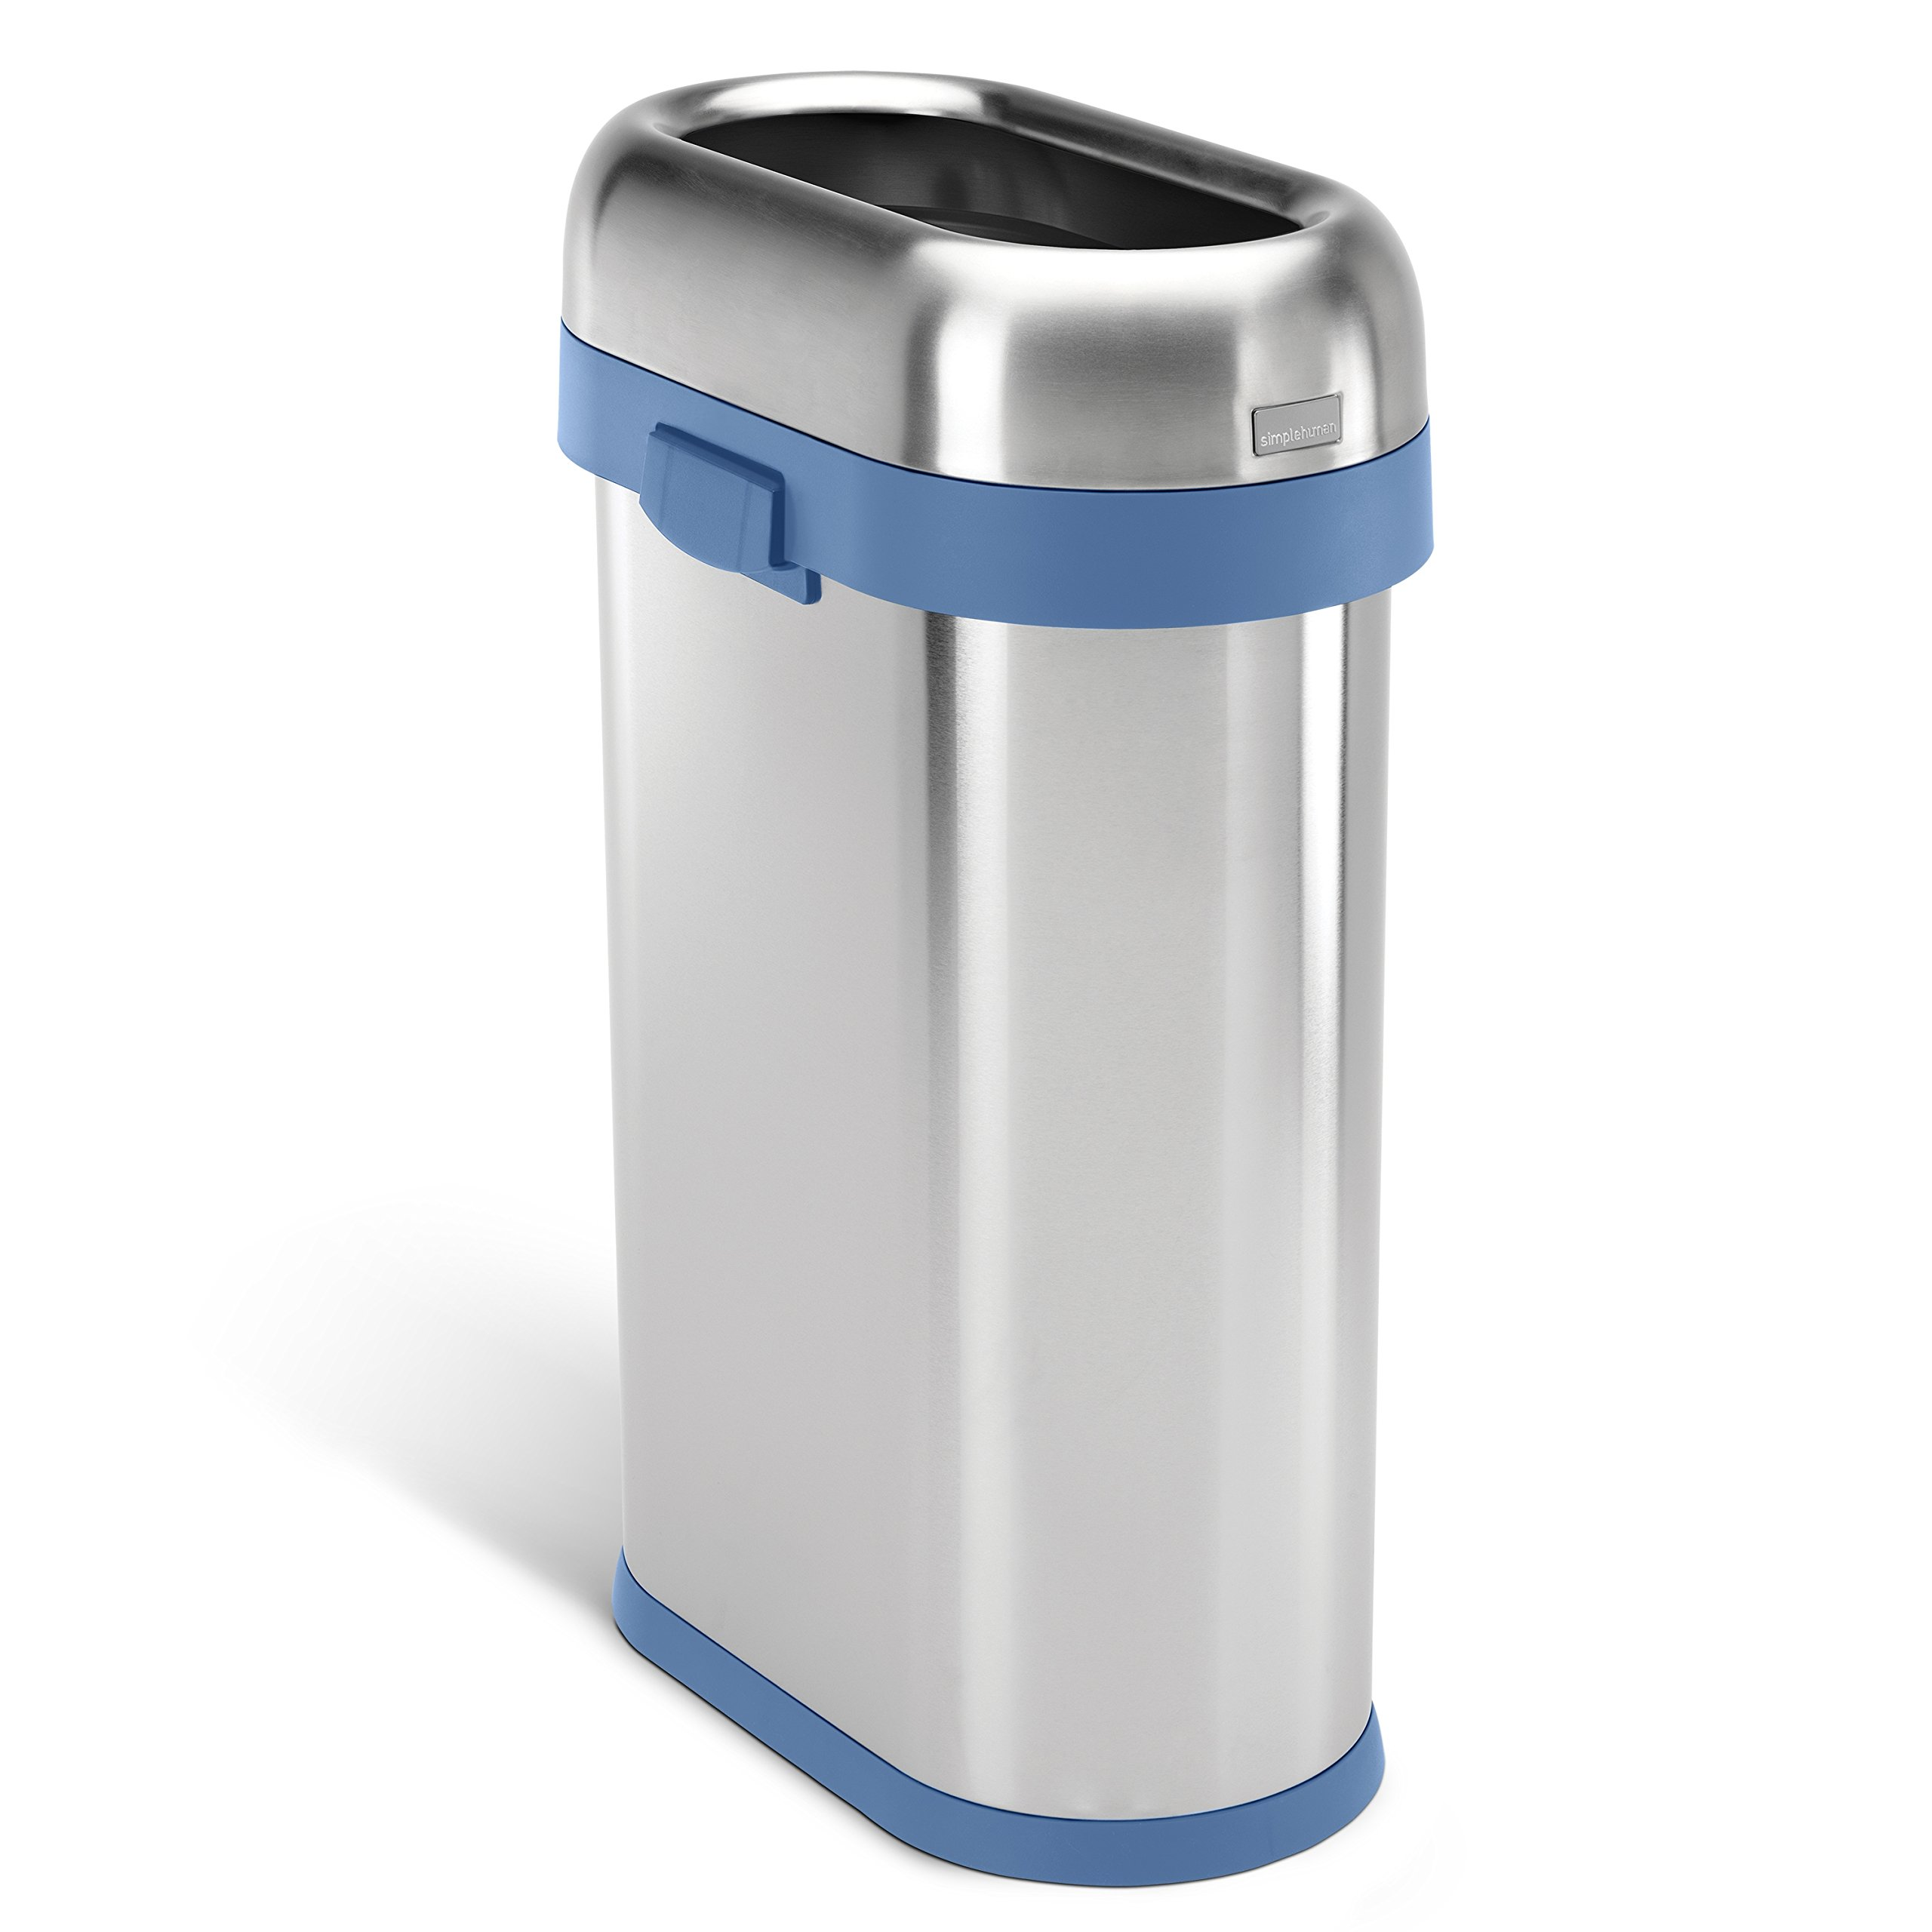 simplehuman Slim Open Commercial Trash Can with Blue Trim, Heavy-Gauge Brushed Stainless Steel, 50 L/13 Gal